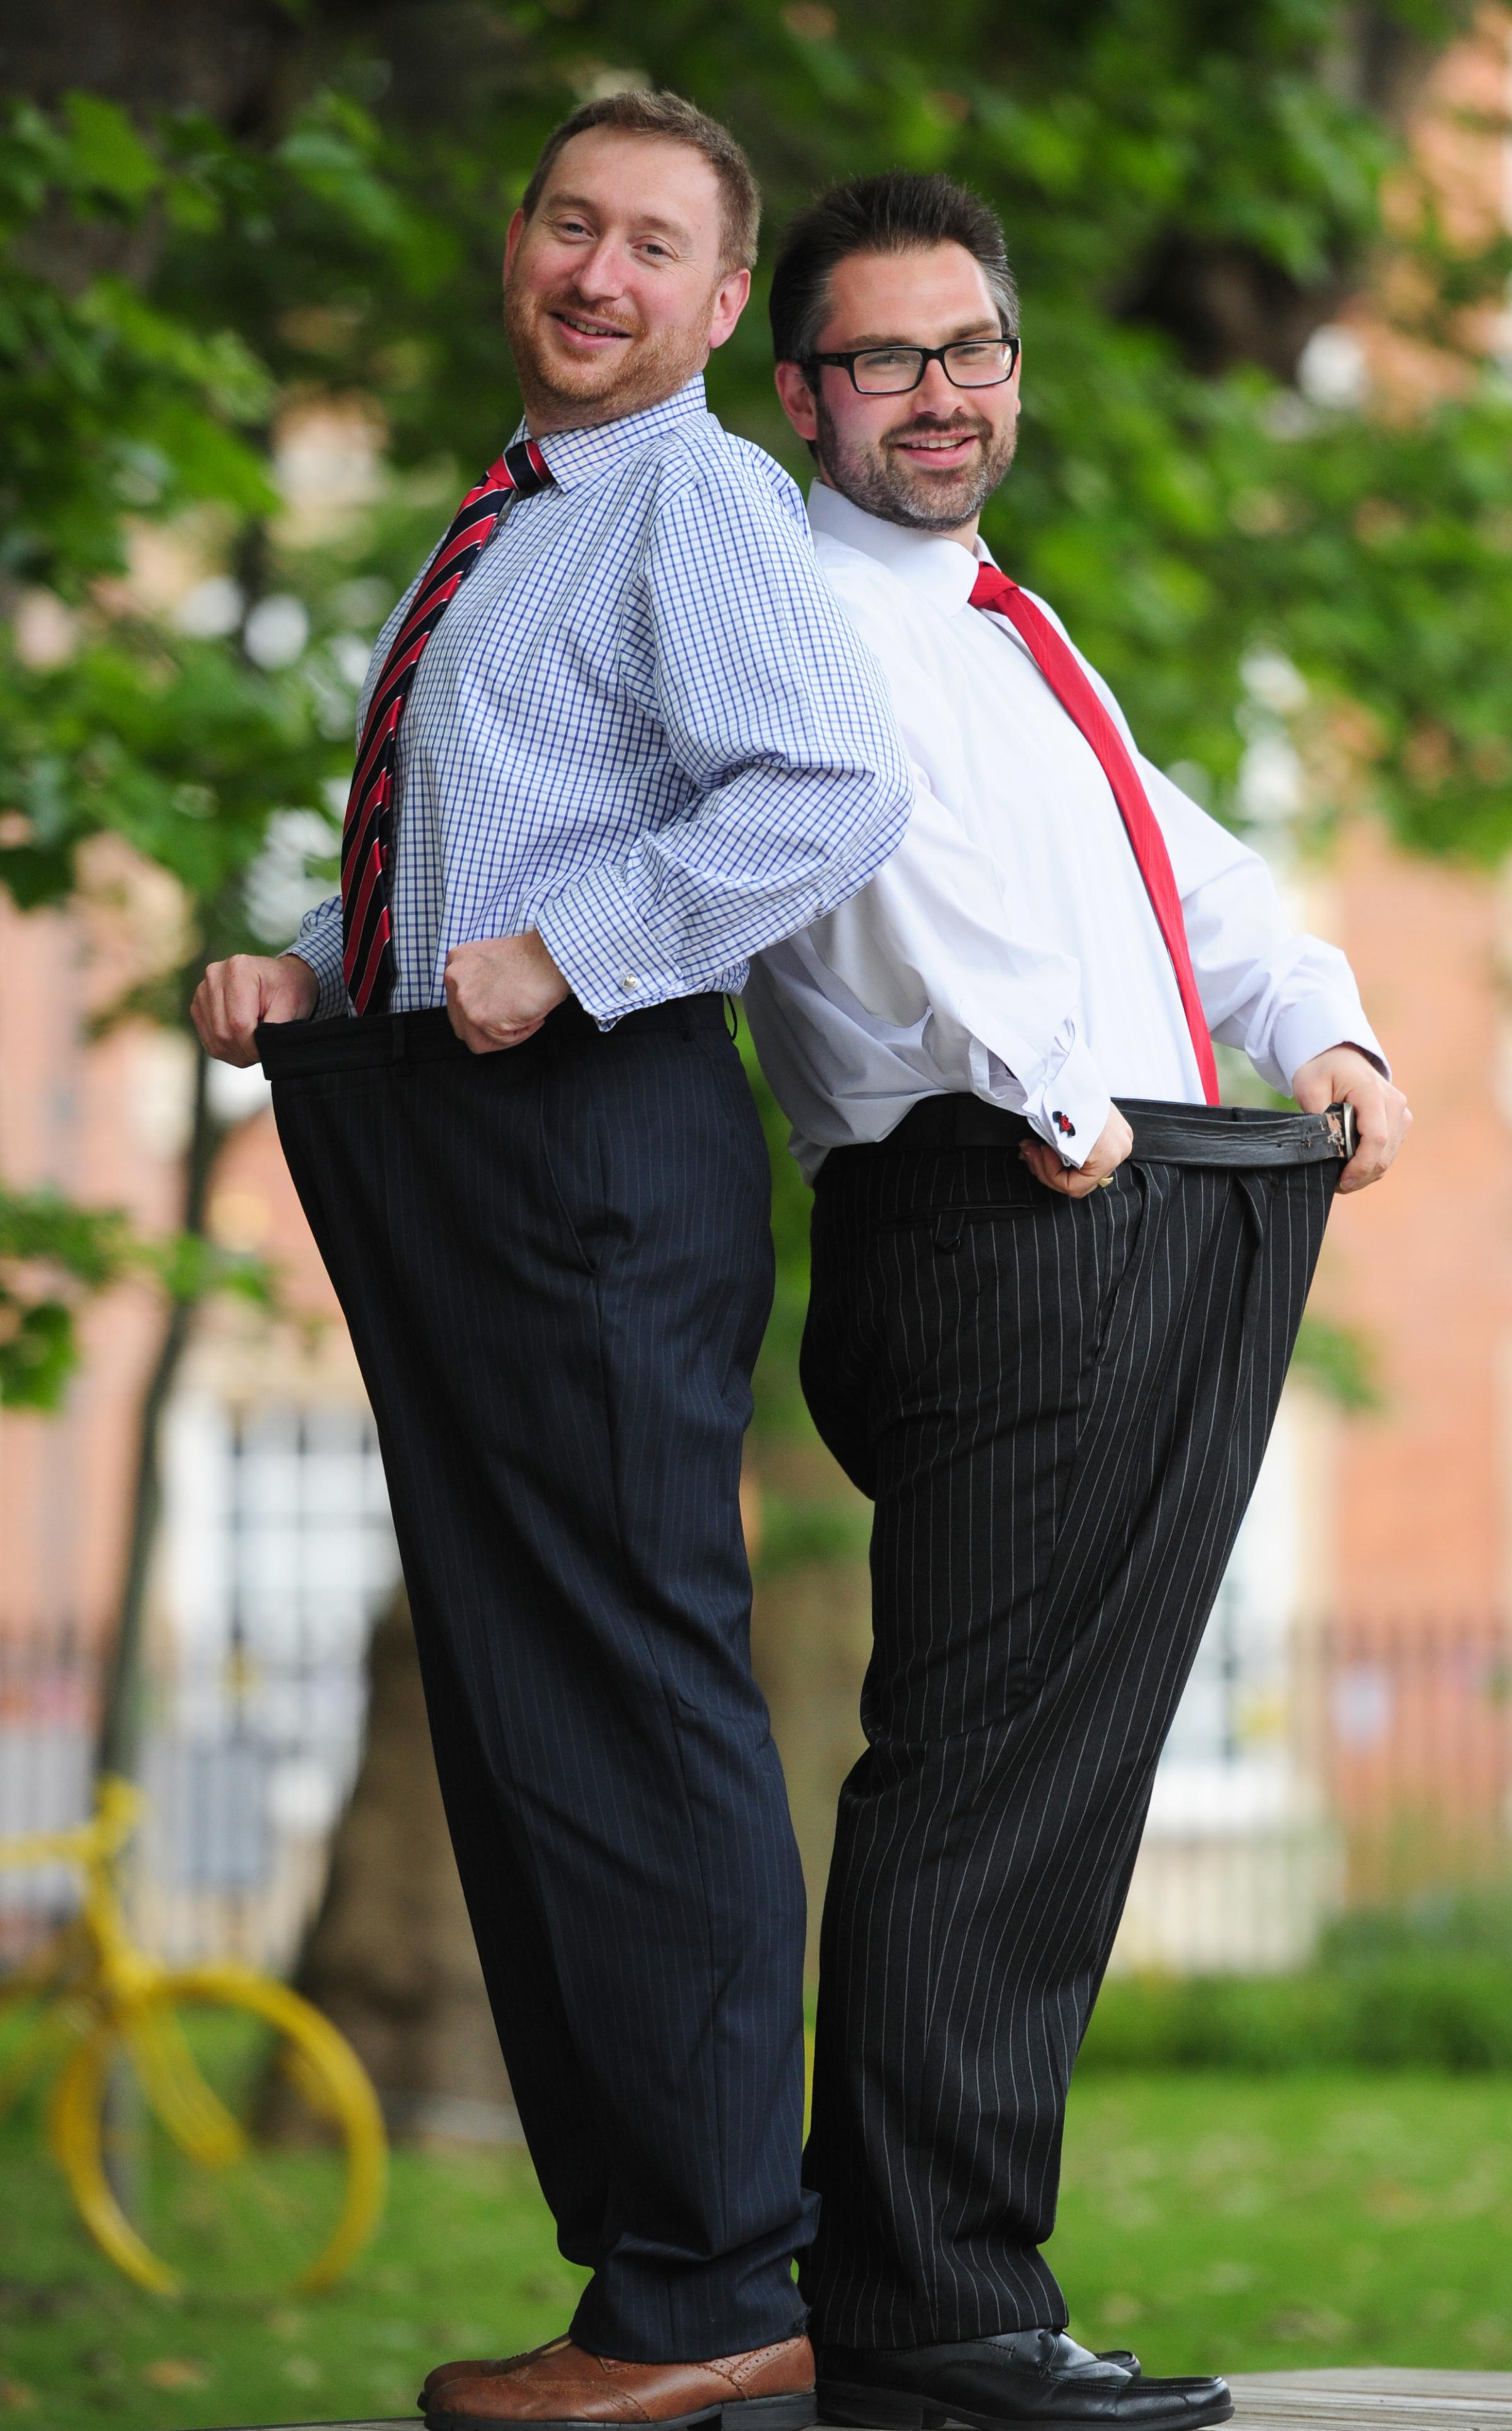 York politicians finish their charity weight-loss contest